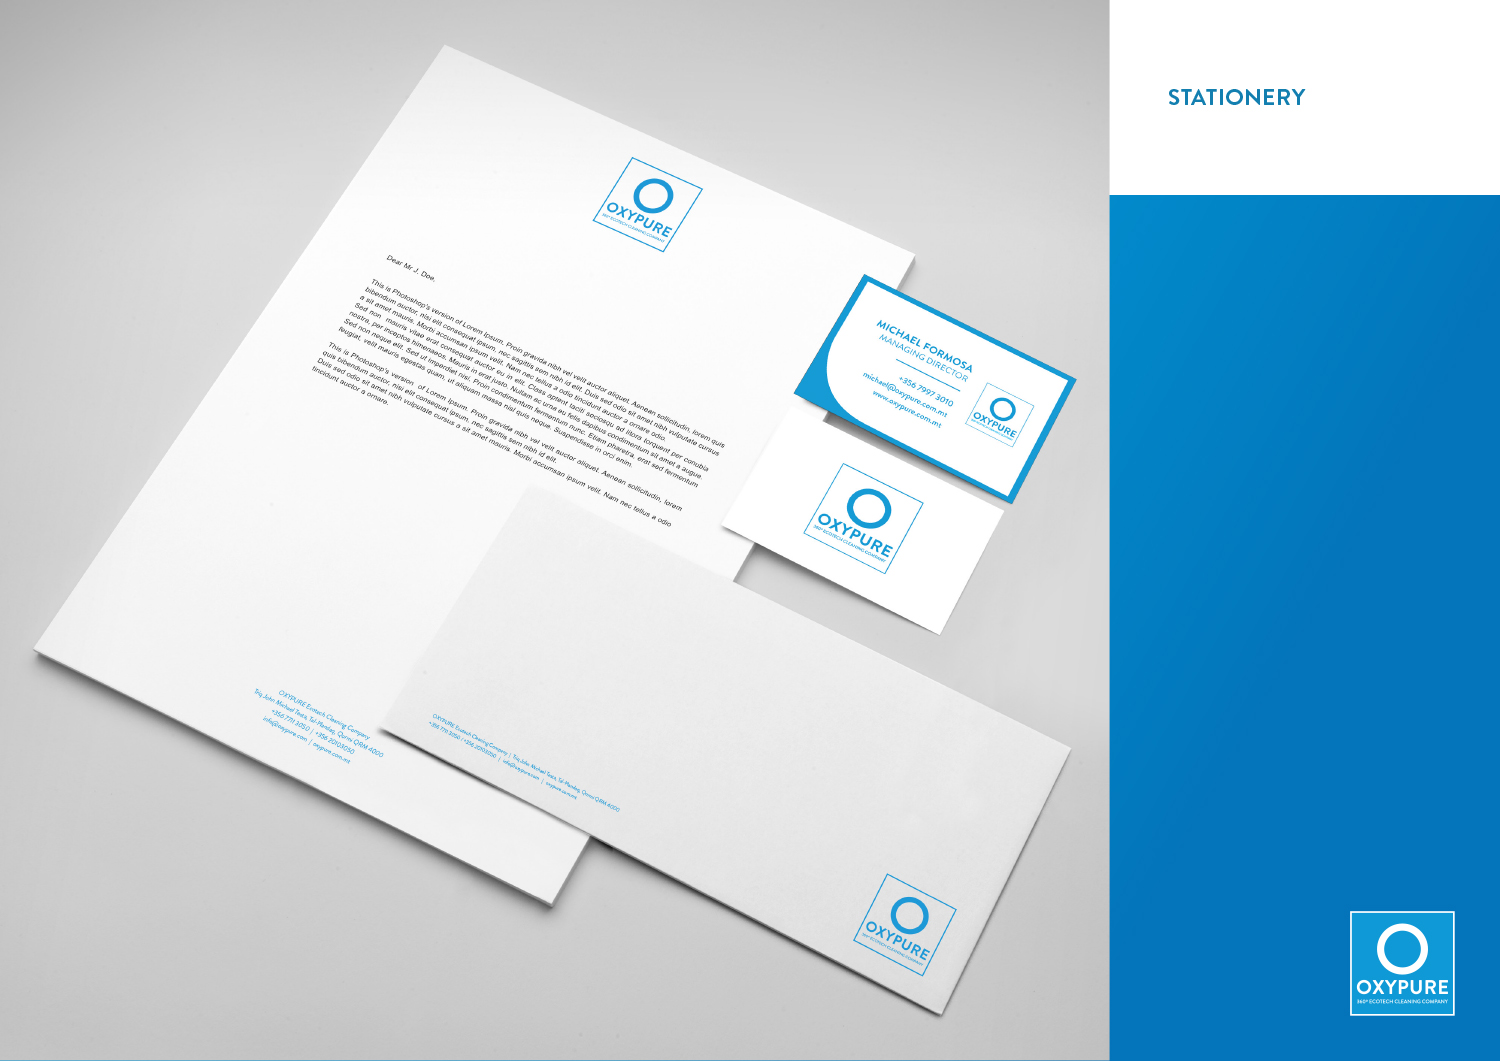 OXYPURE – Branding Mock Up Visuals 2-2